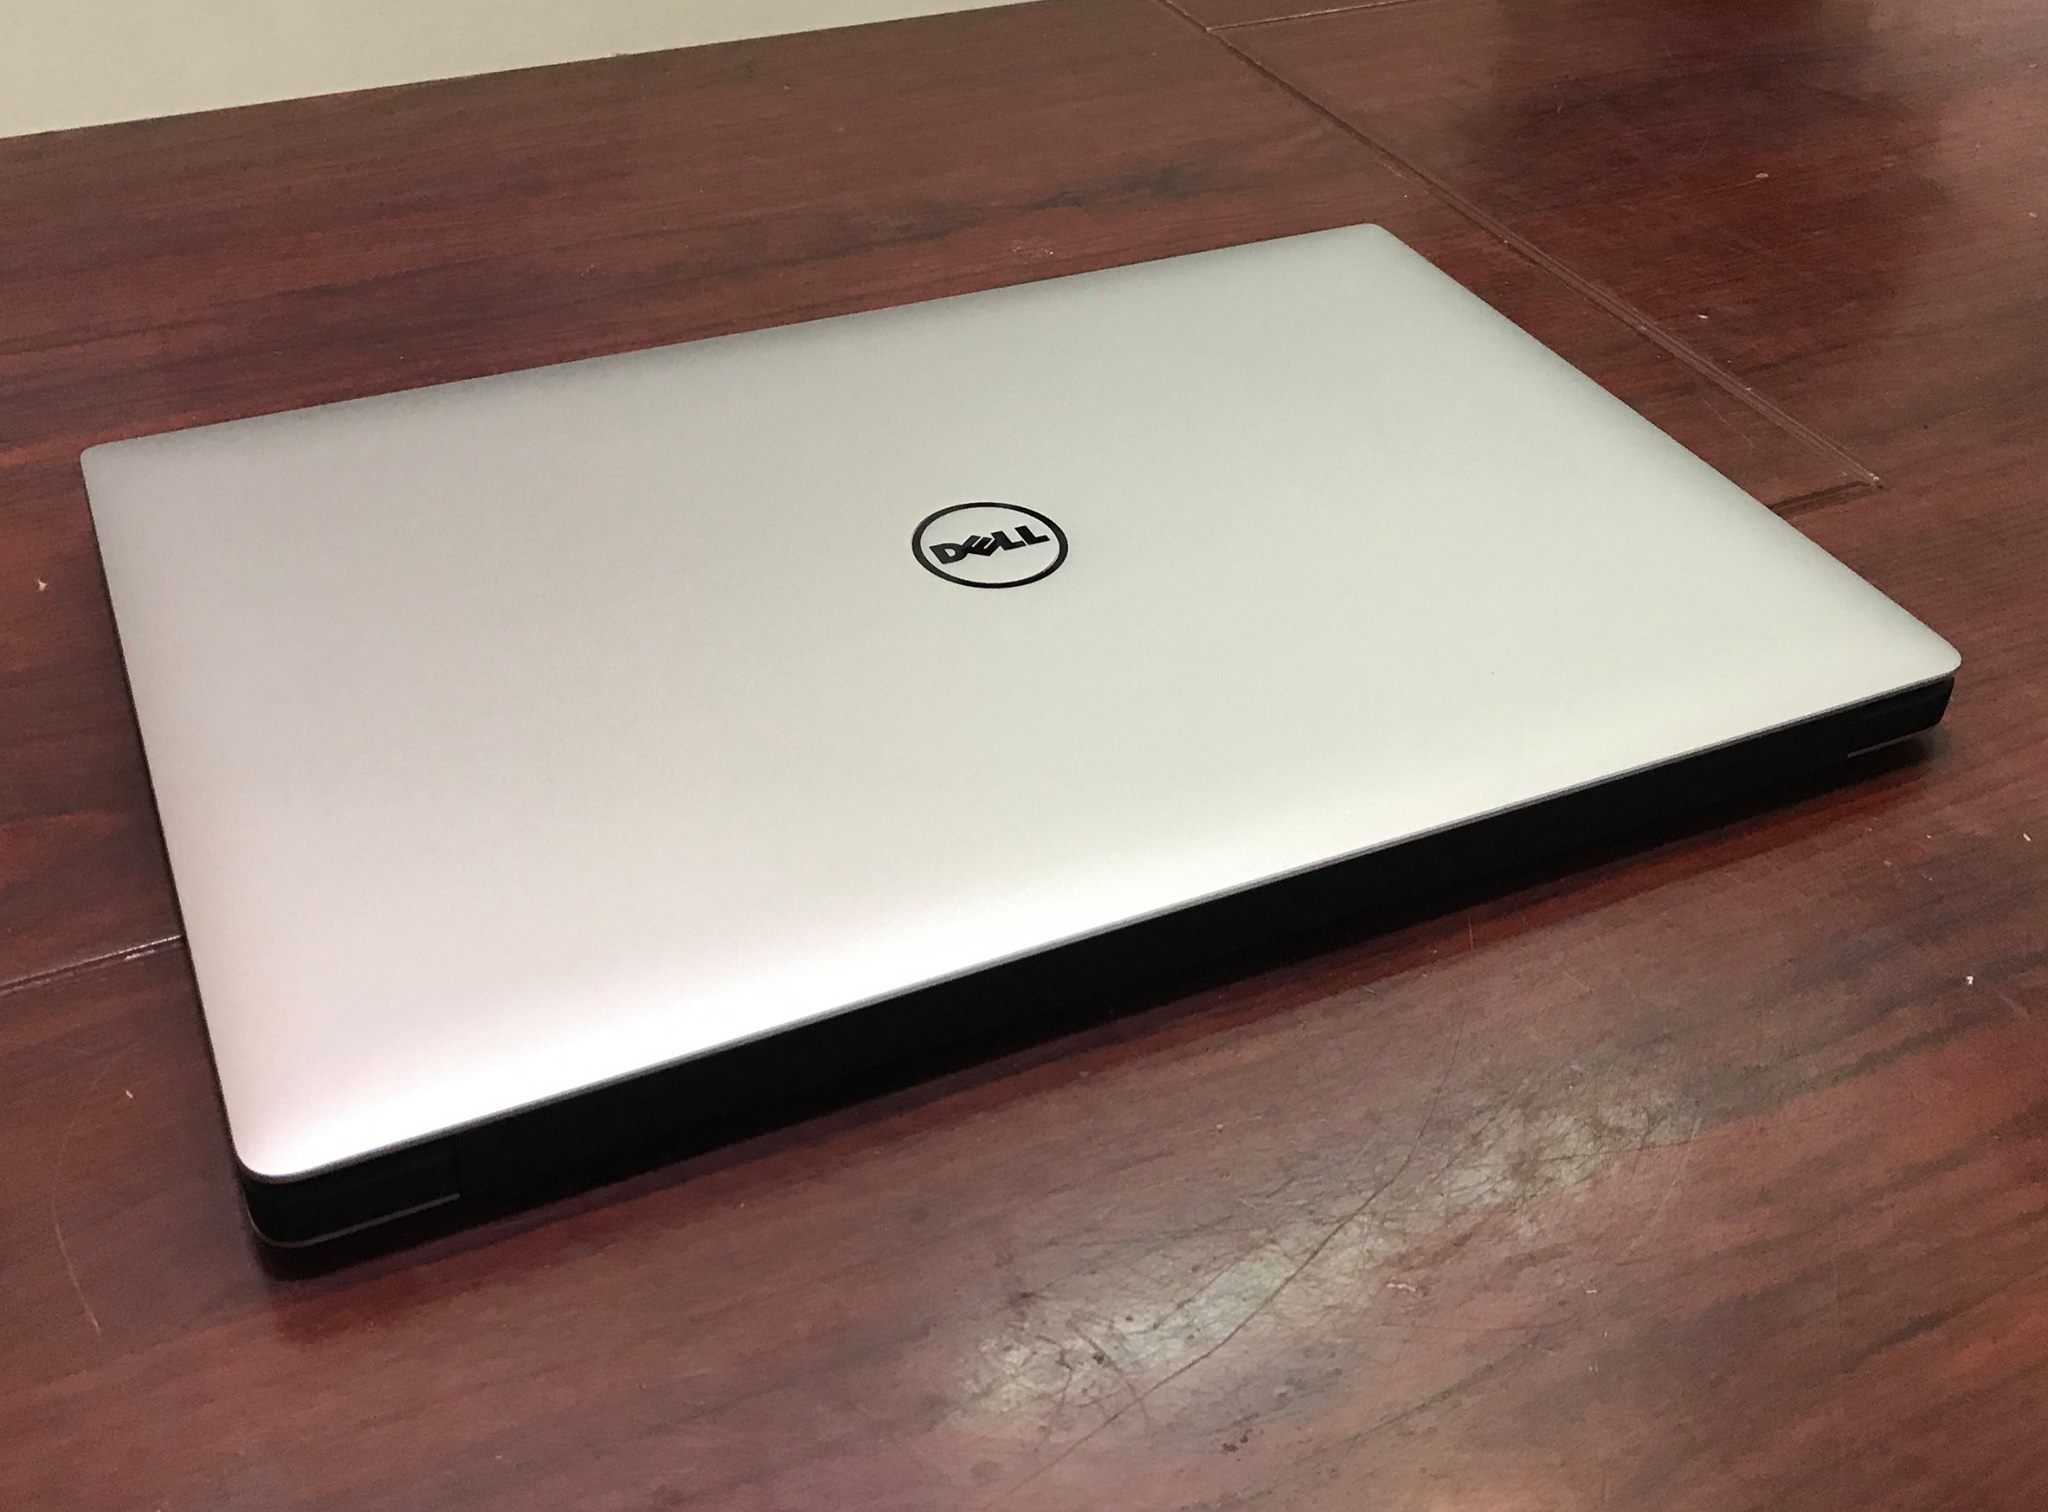 Laptop Dell Precision 5510 i7 LCD 4K-9.jpg